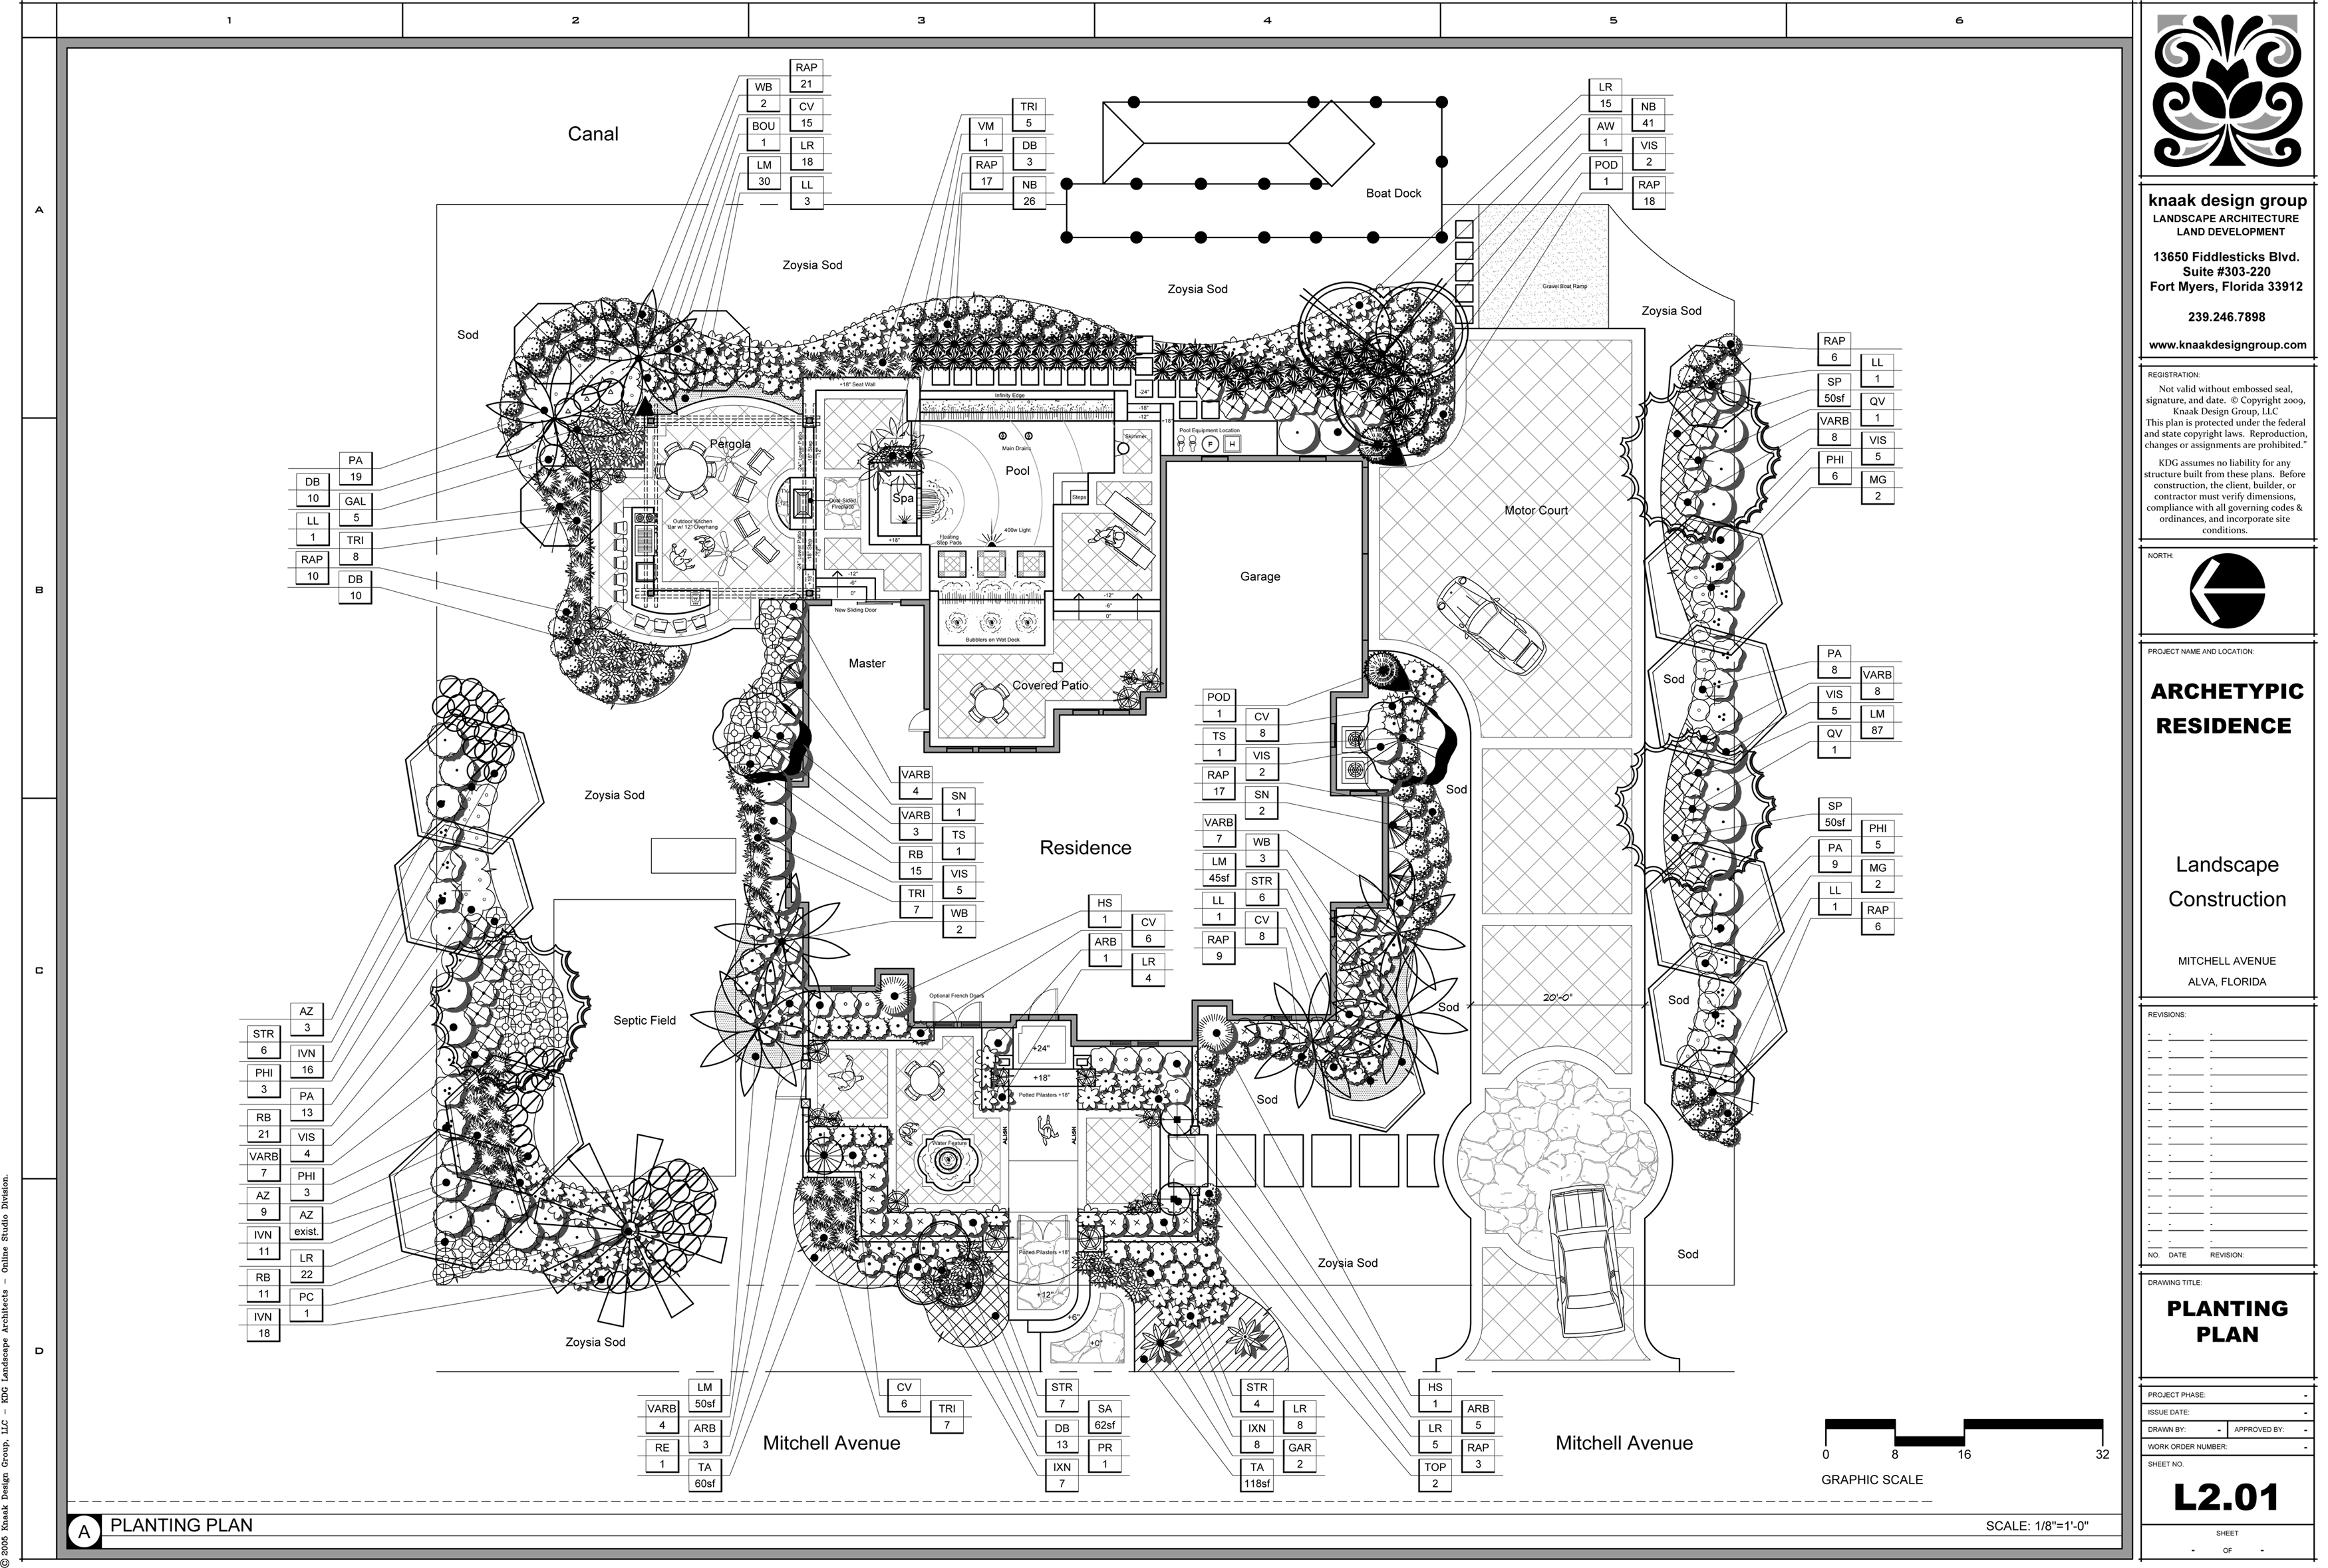 1000 images about ld plans on pinterest landscape for Pro design landscape